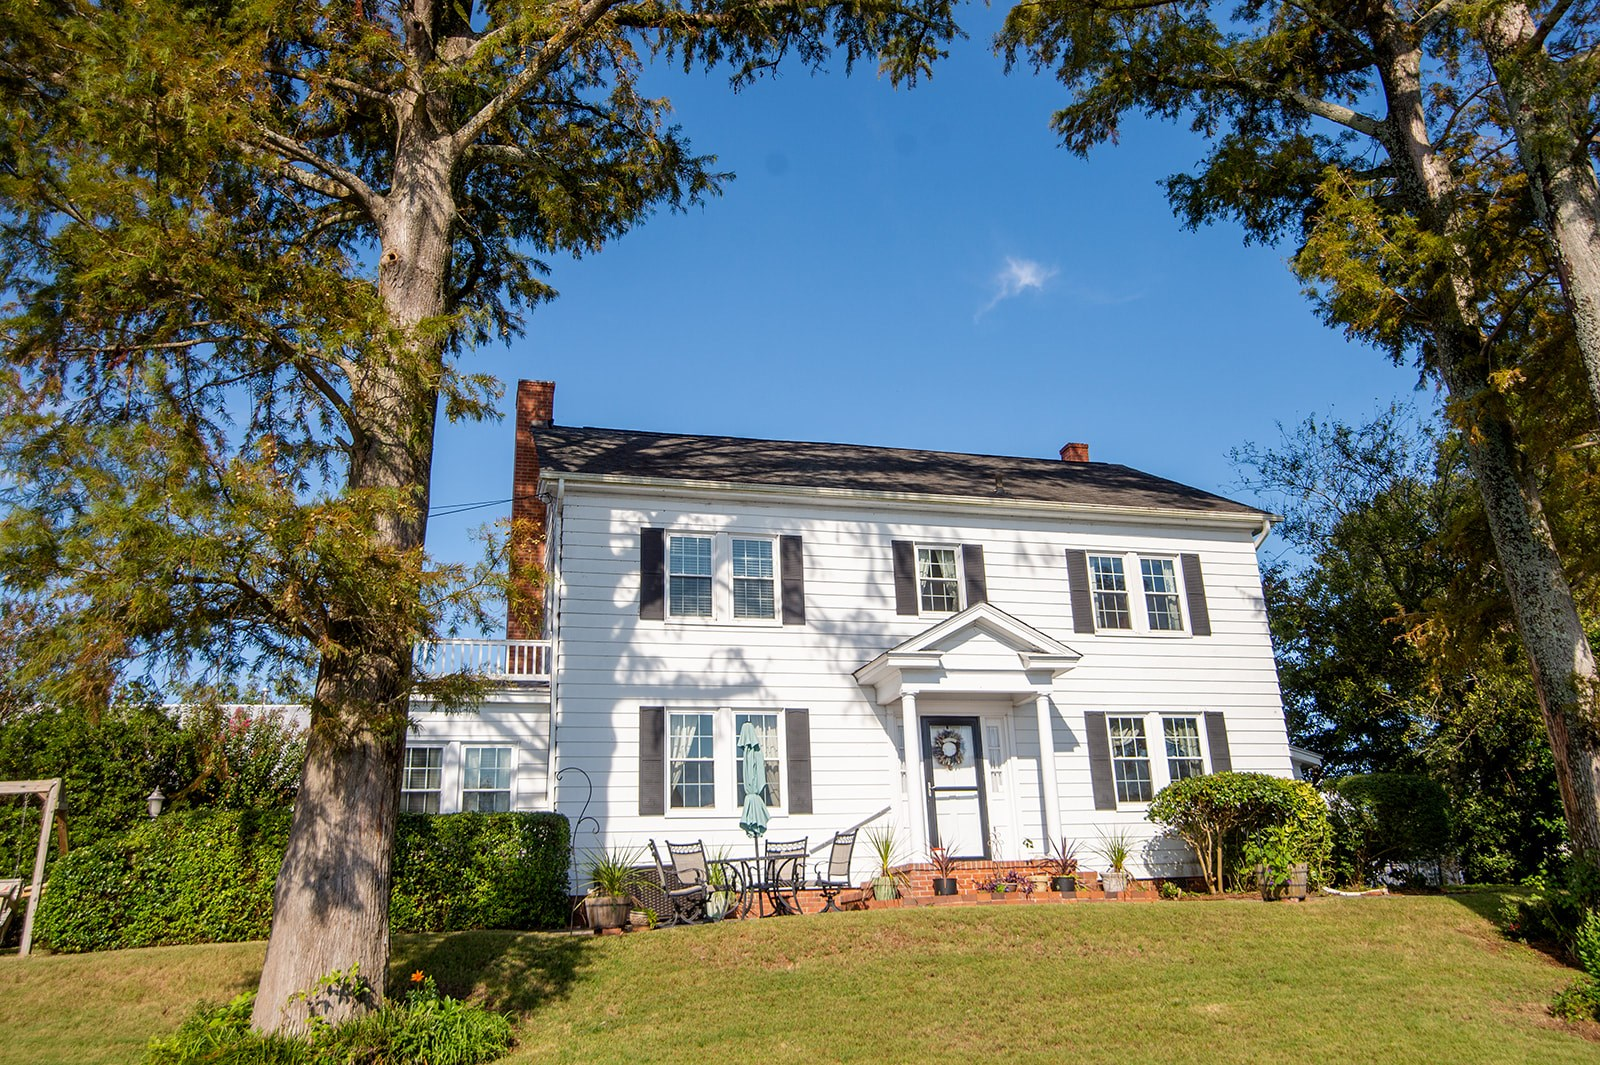 Historic Waterfront Home on the Perquimans River